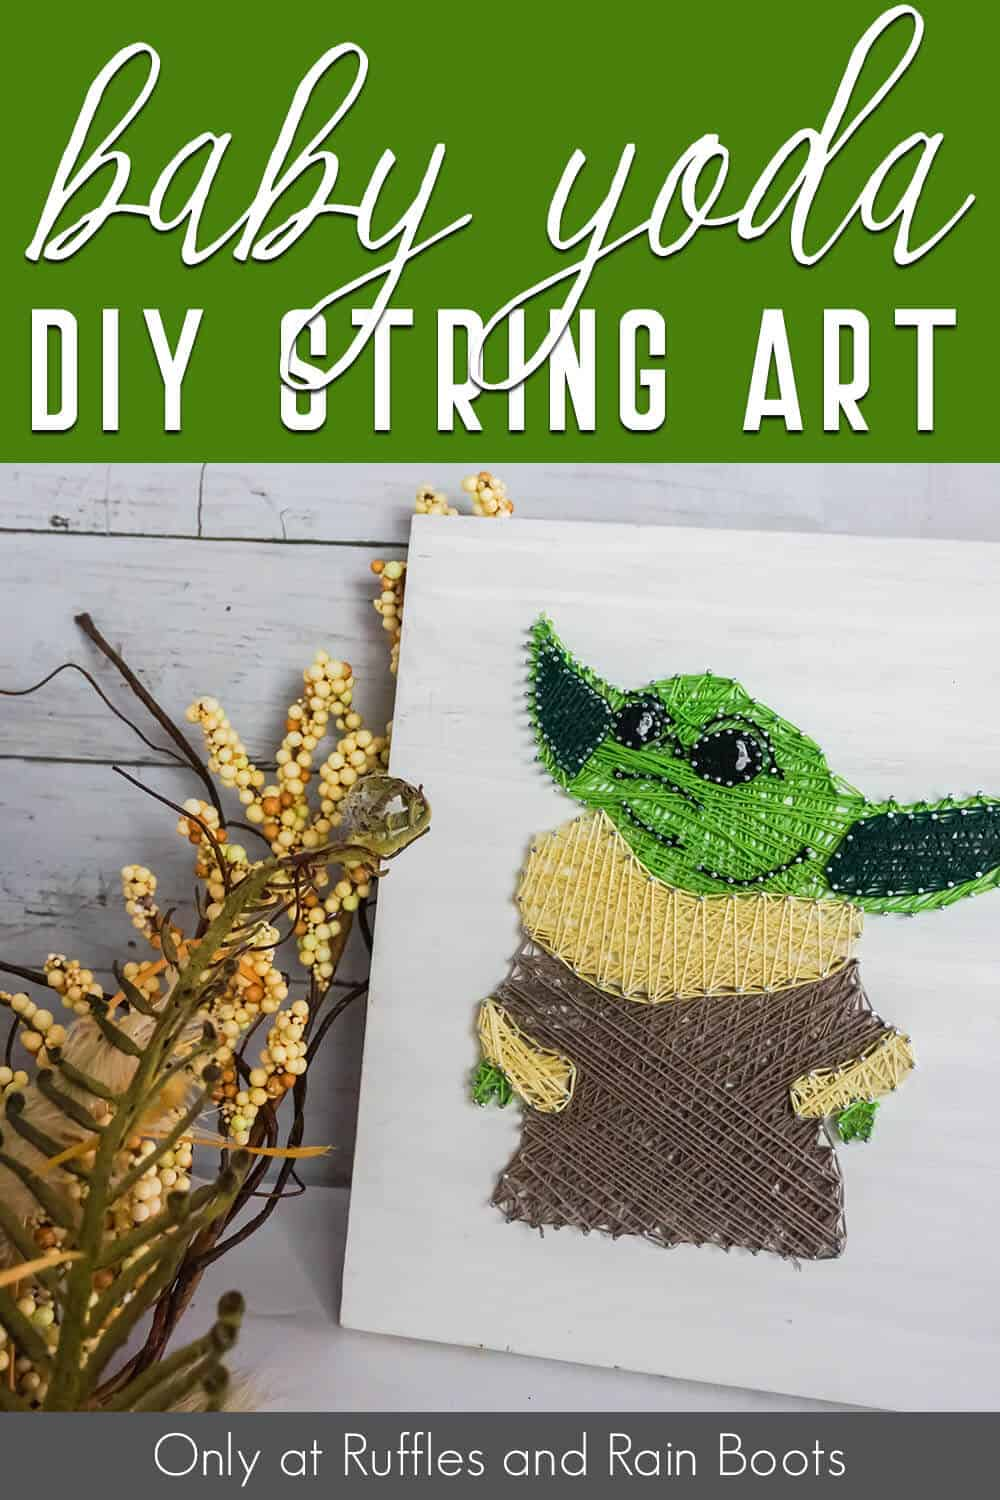 template for baby yoda string art with text which reads baby yoda diy string art